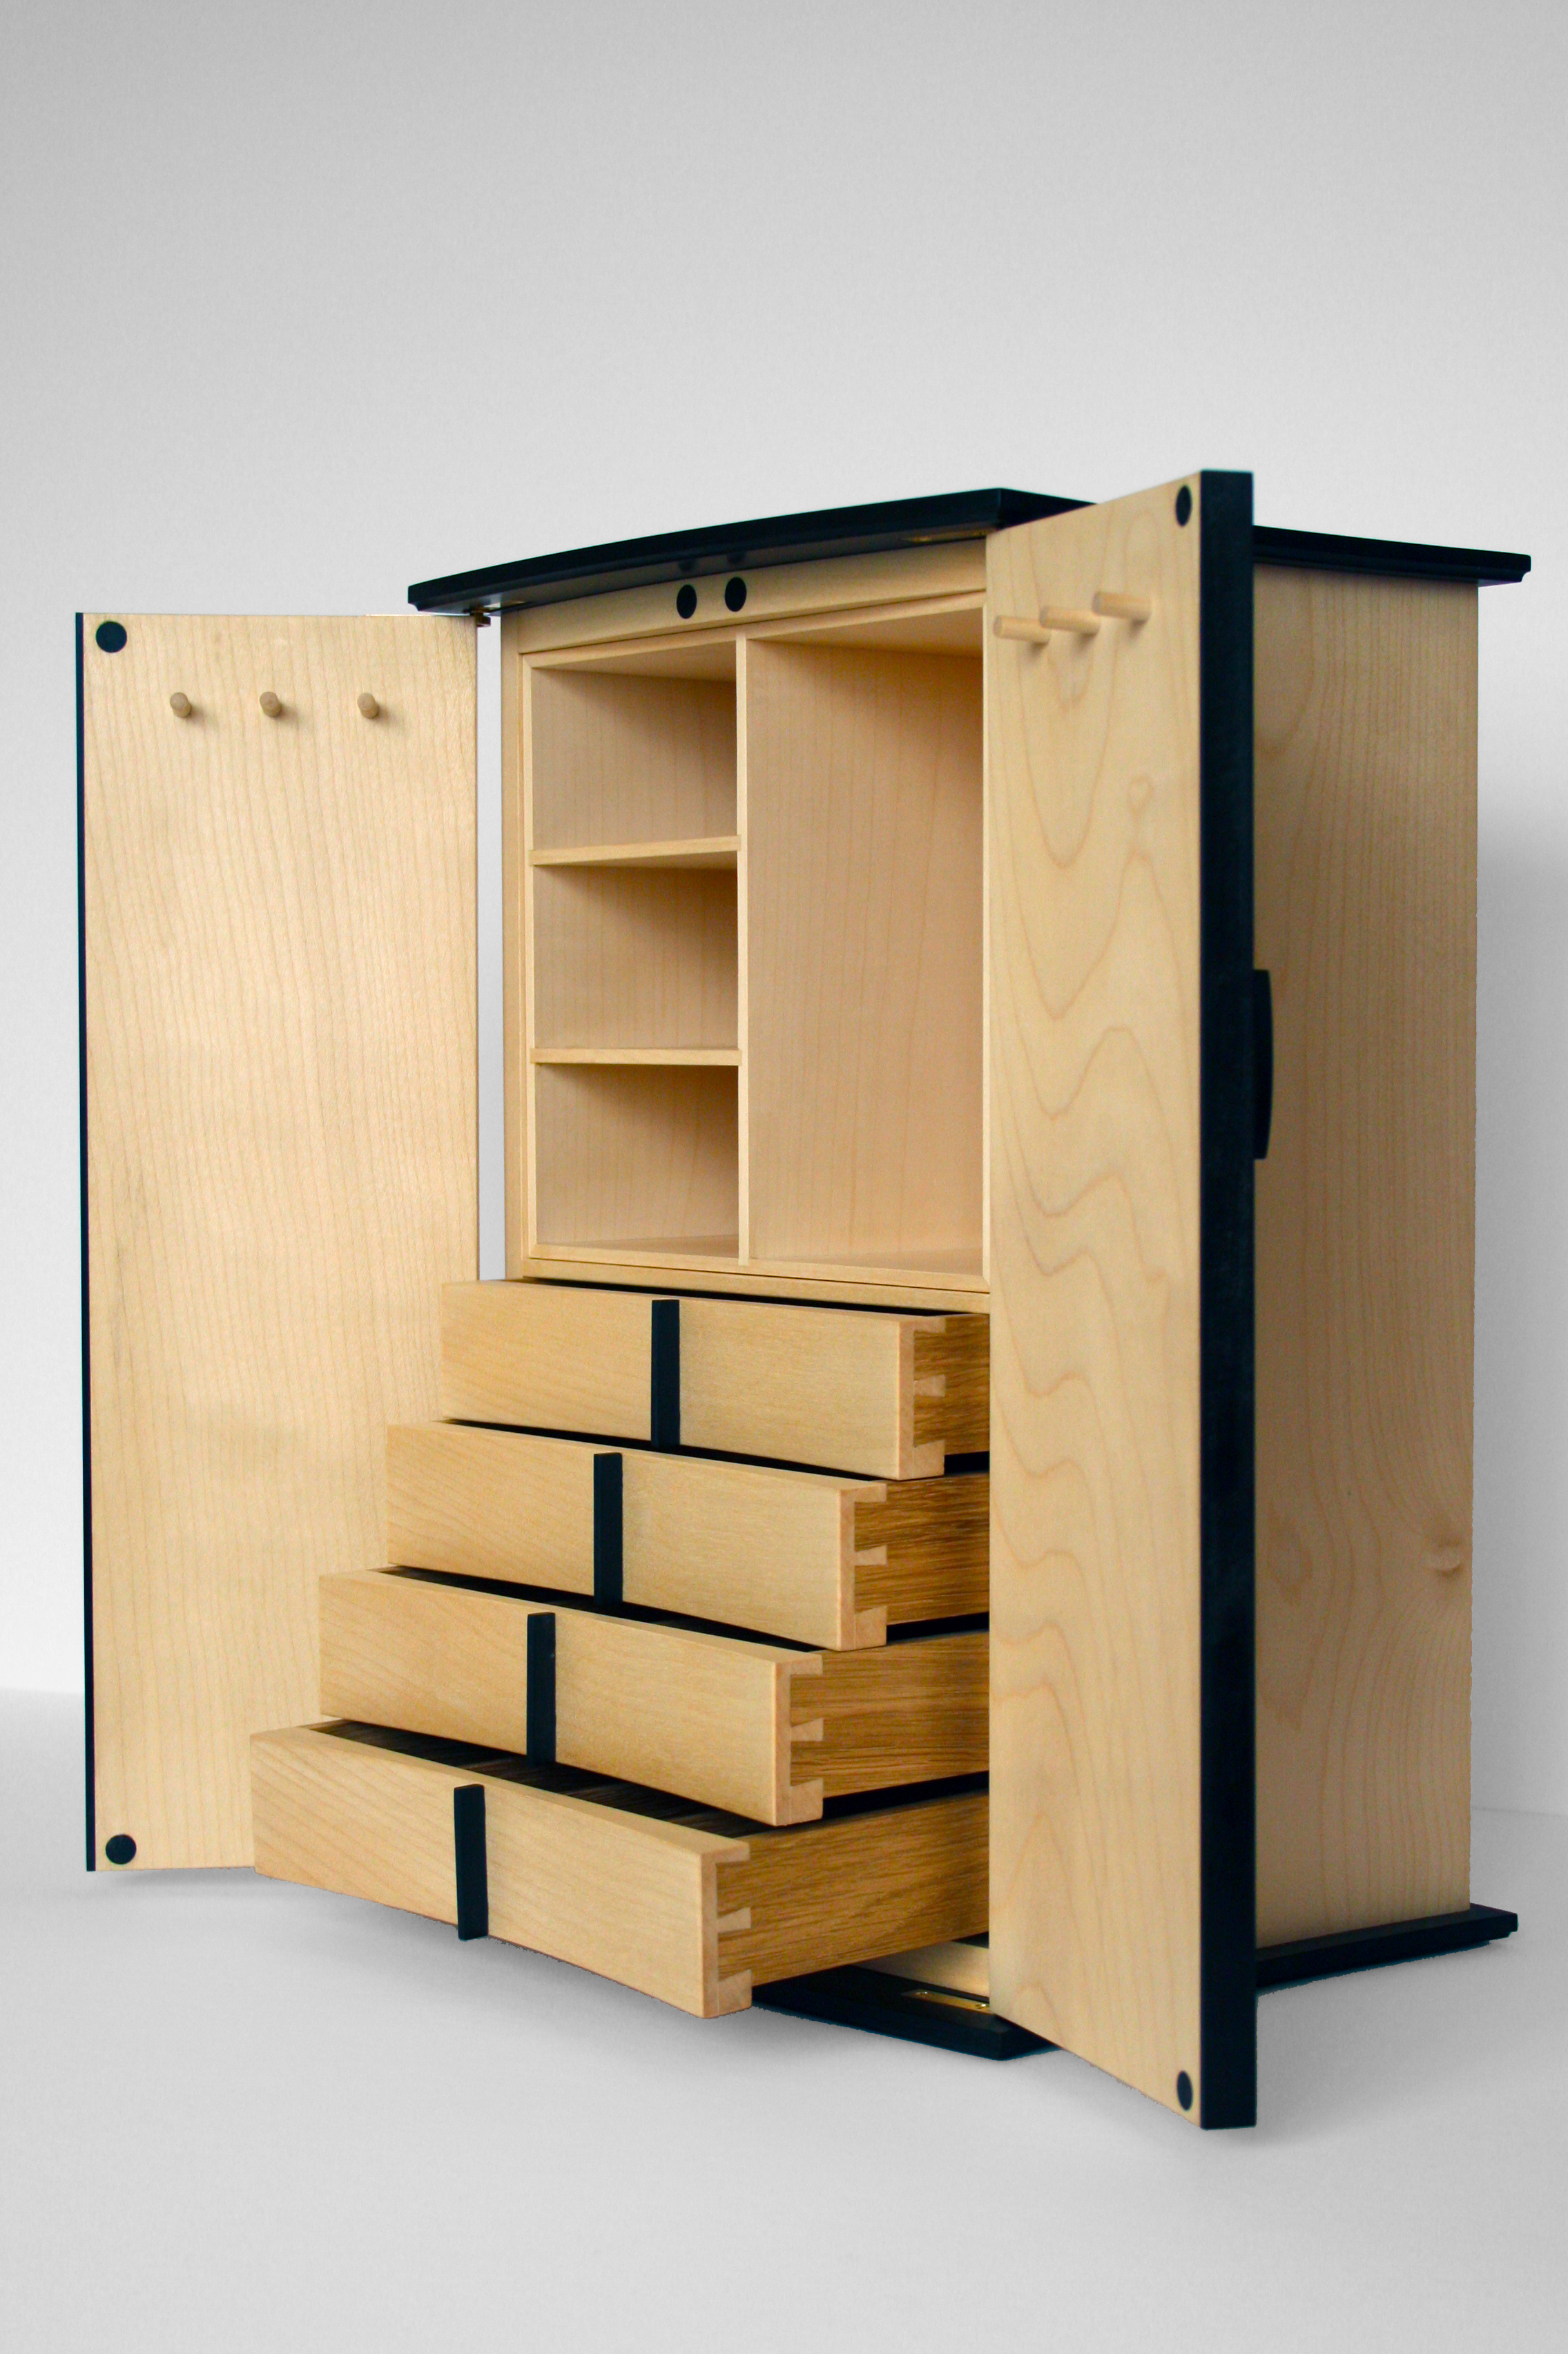 Cabinet for jewellery storage